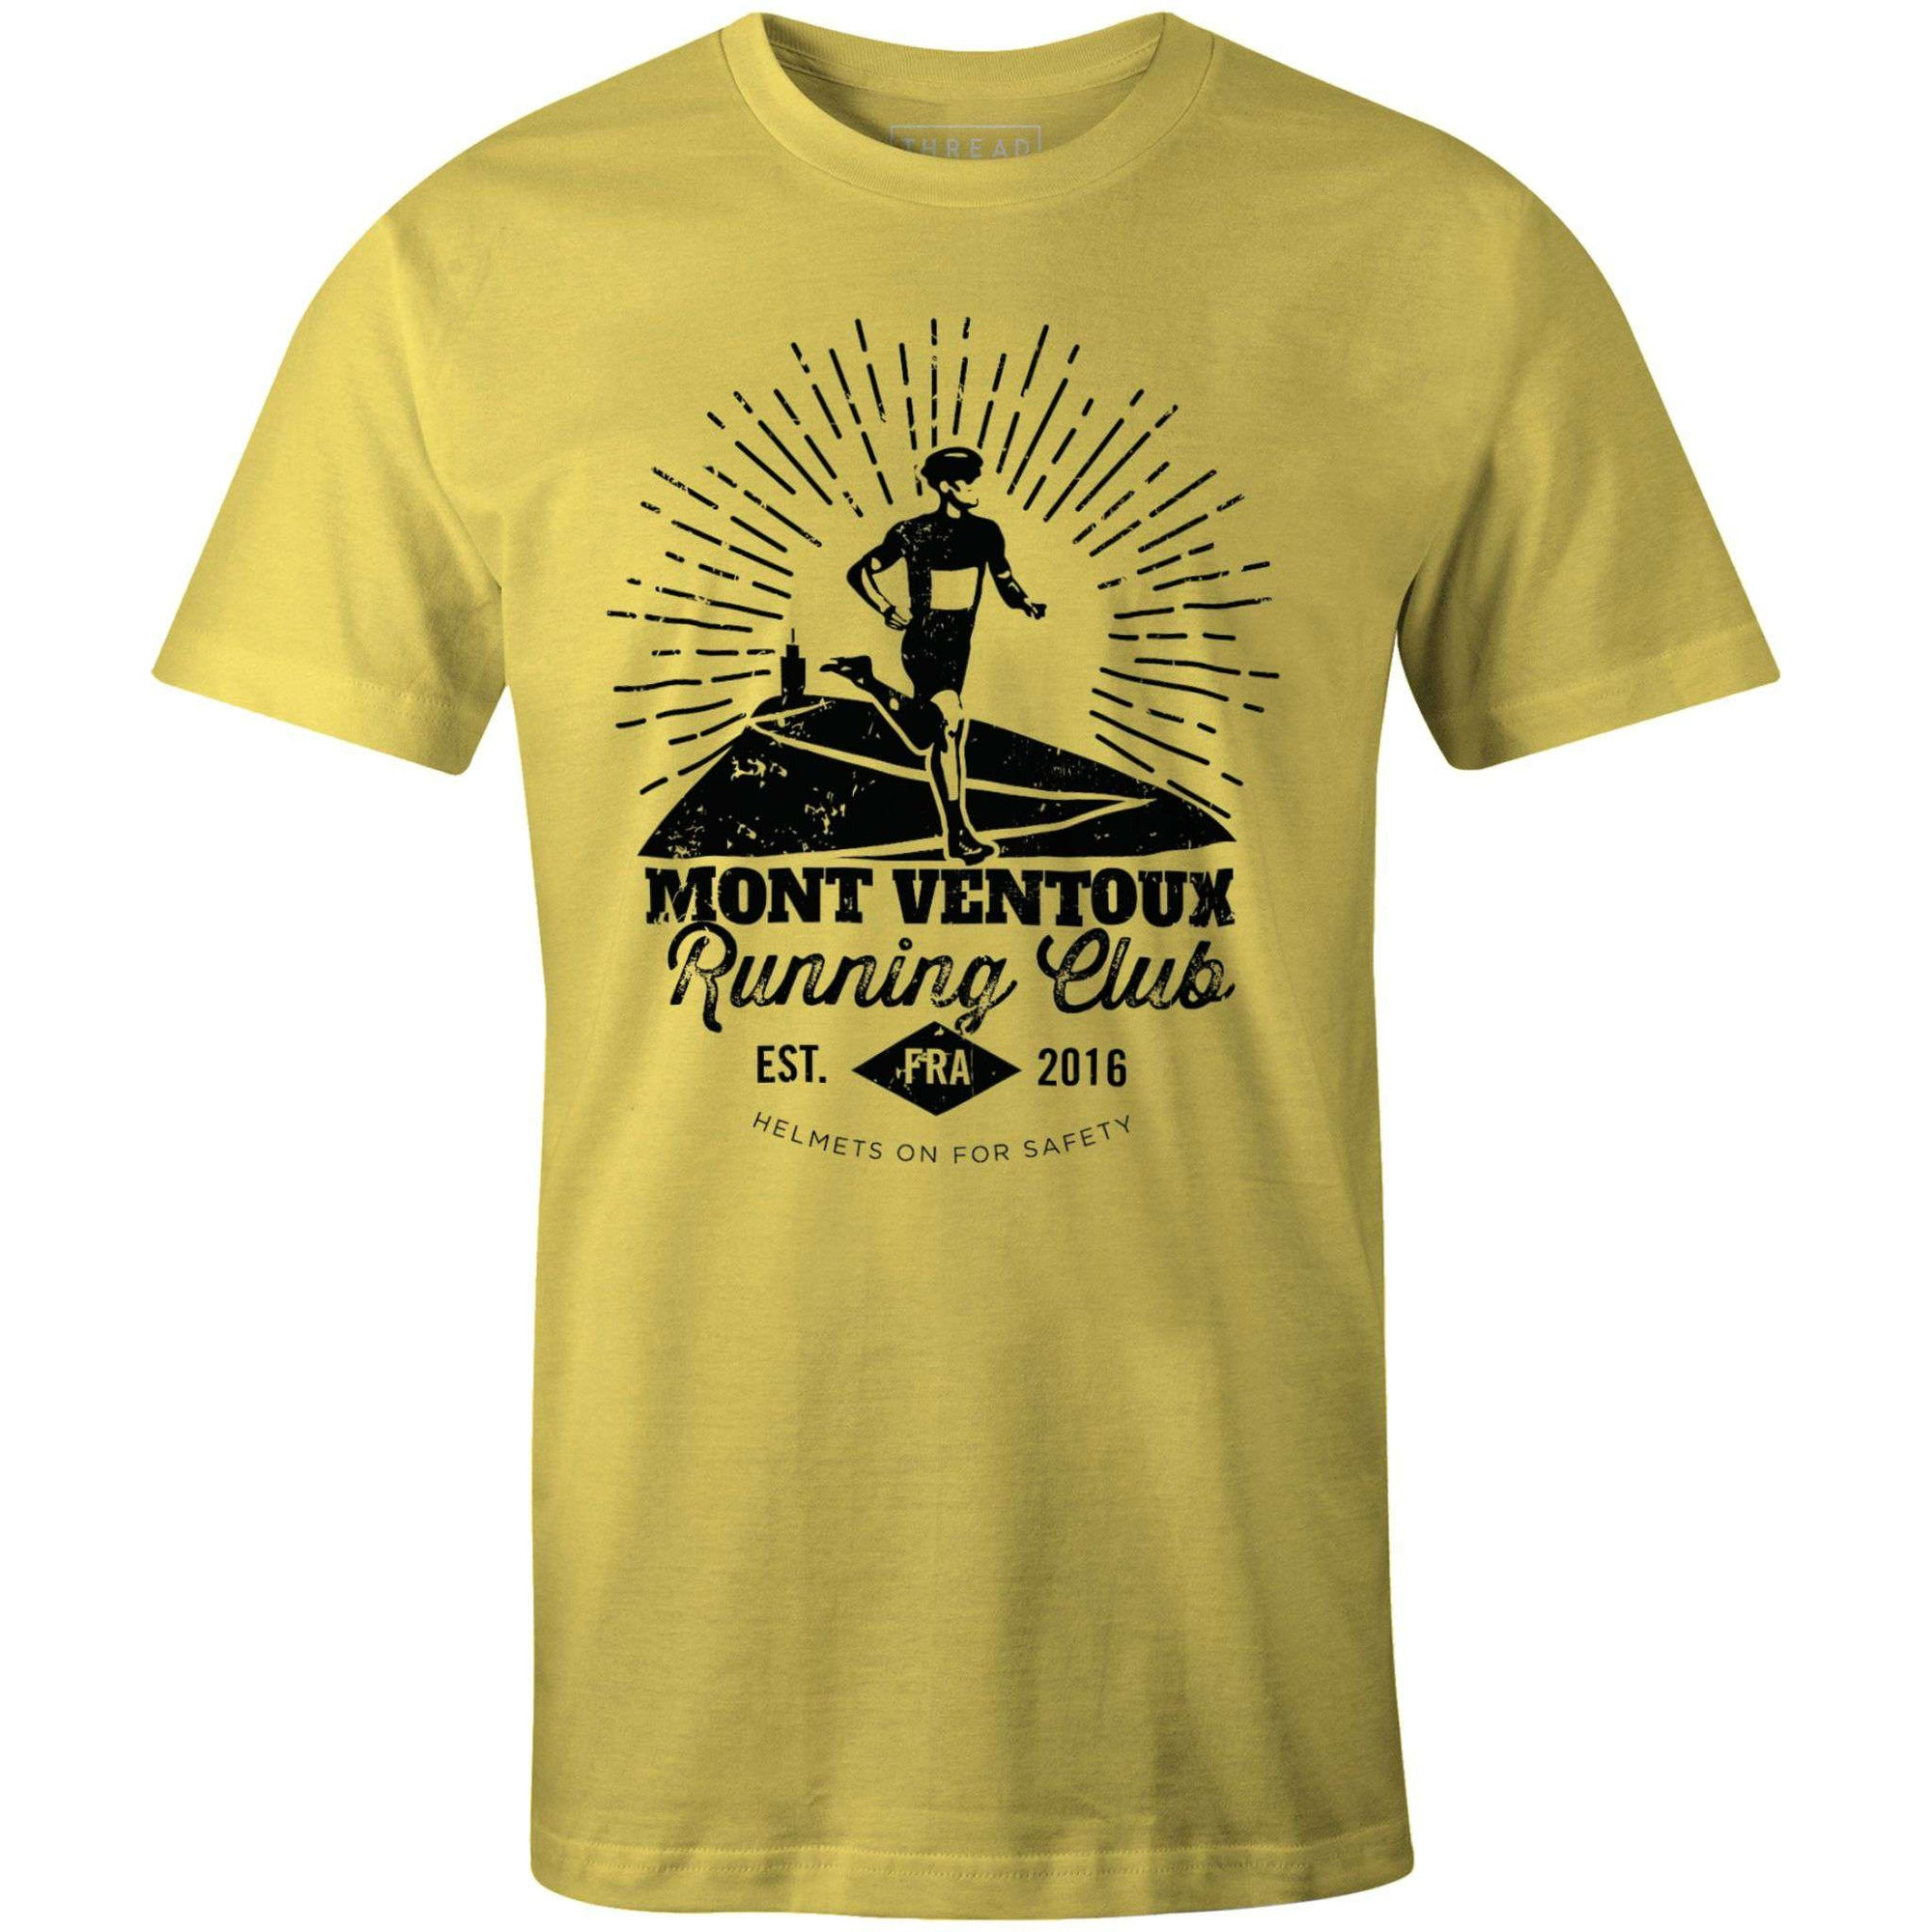 Mont Ventoux Running ClubThread+Spoke - THREAD+SPOKE | MTB APPAREL | ROAD BIKING T-SHIRTS | BICYCLE T SHIRTS |